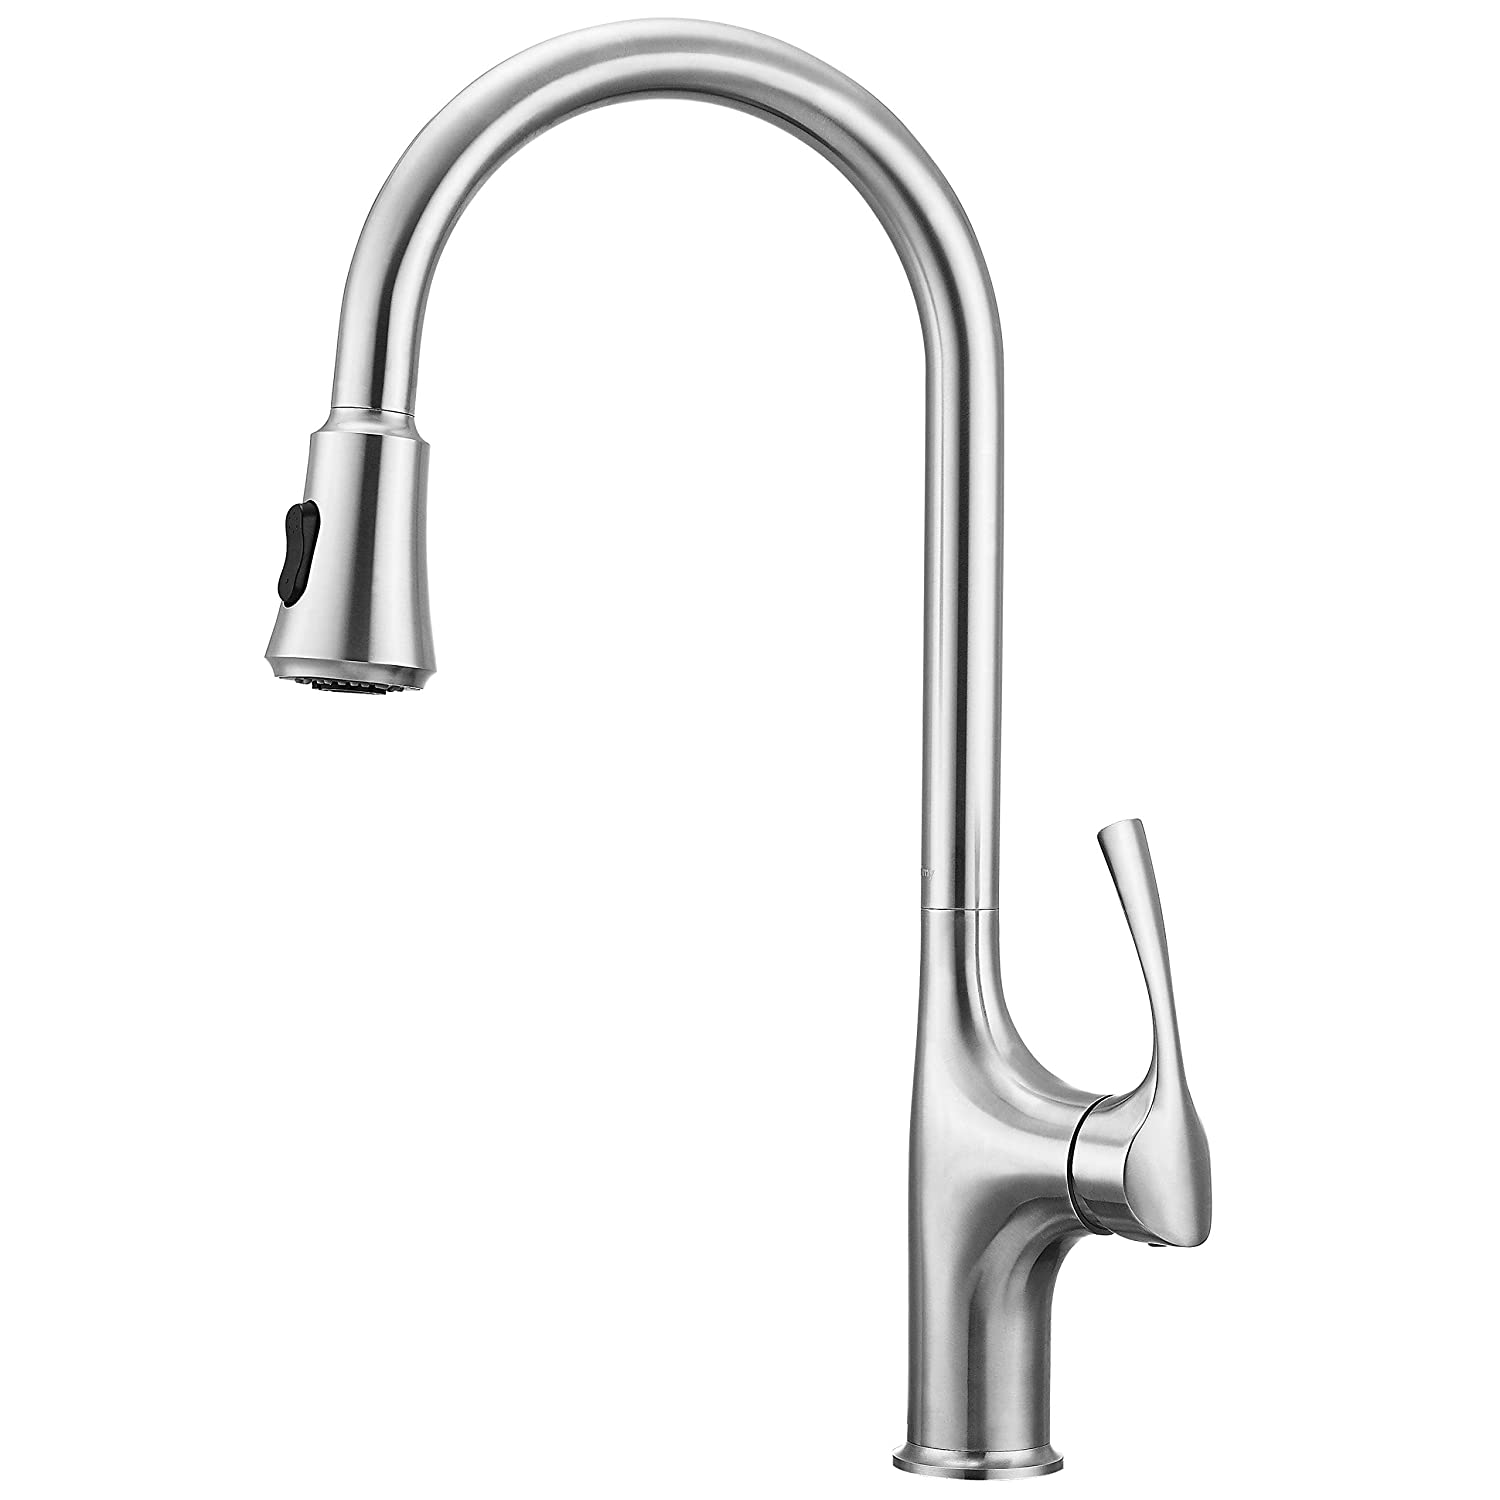 "Primy Kitchen Faucets with Pull Down Sprayer Modern Heavy Duty Lead-Free Single Handle High-Arc Kitchen Sink Faucet With Deck Plate, Height 19-13/32"", Solid Spot Resist Stainless Steel"